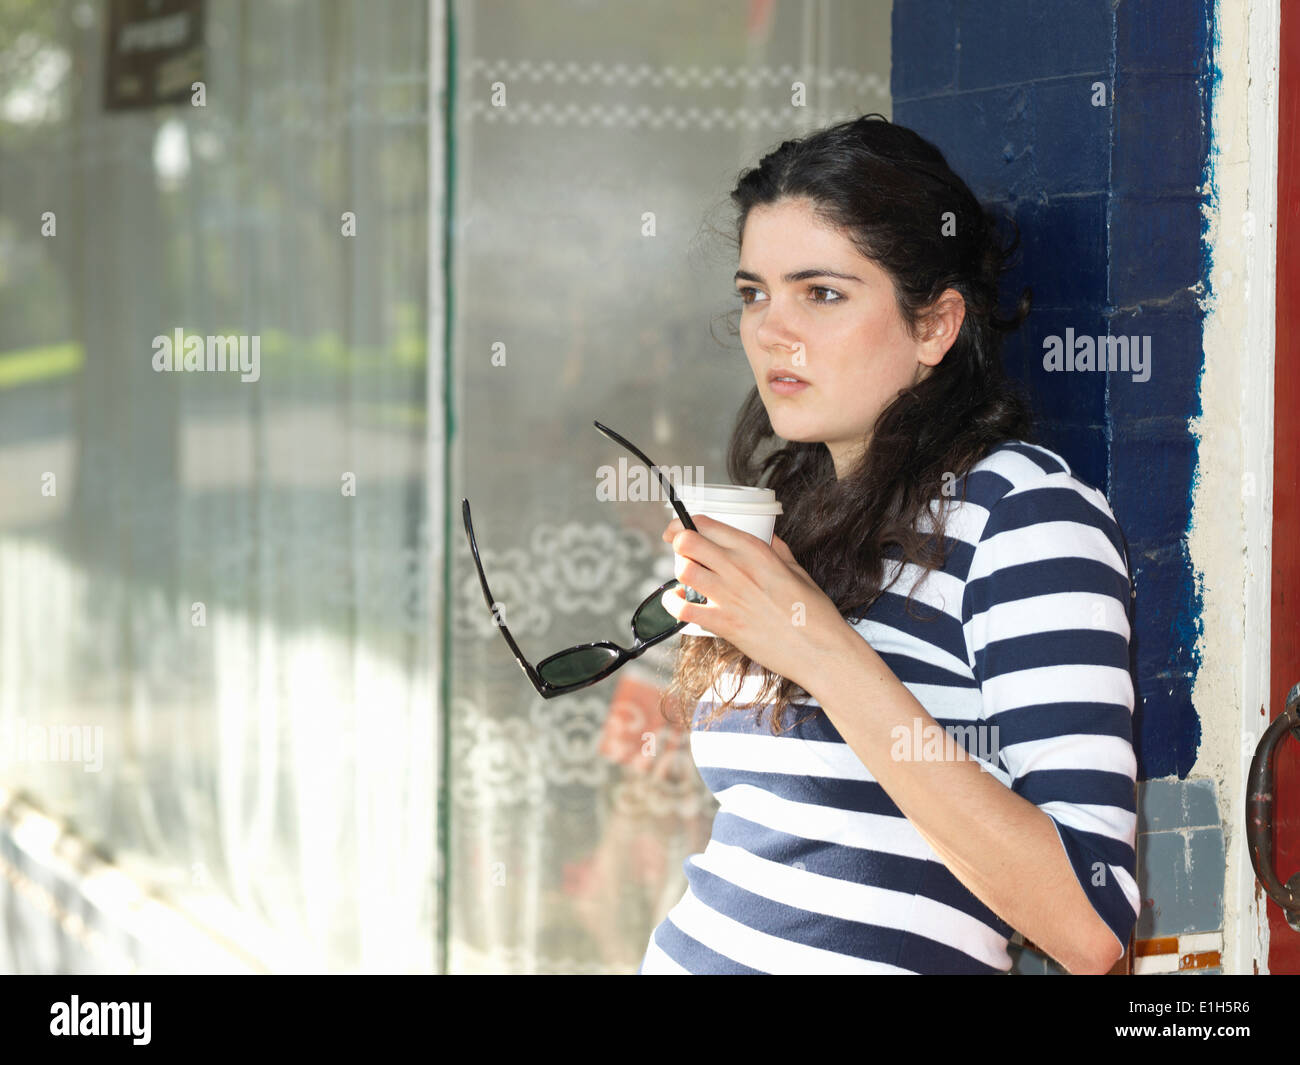 Young woman with takeaway coffee waiting outside cafe - Stock Image